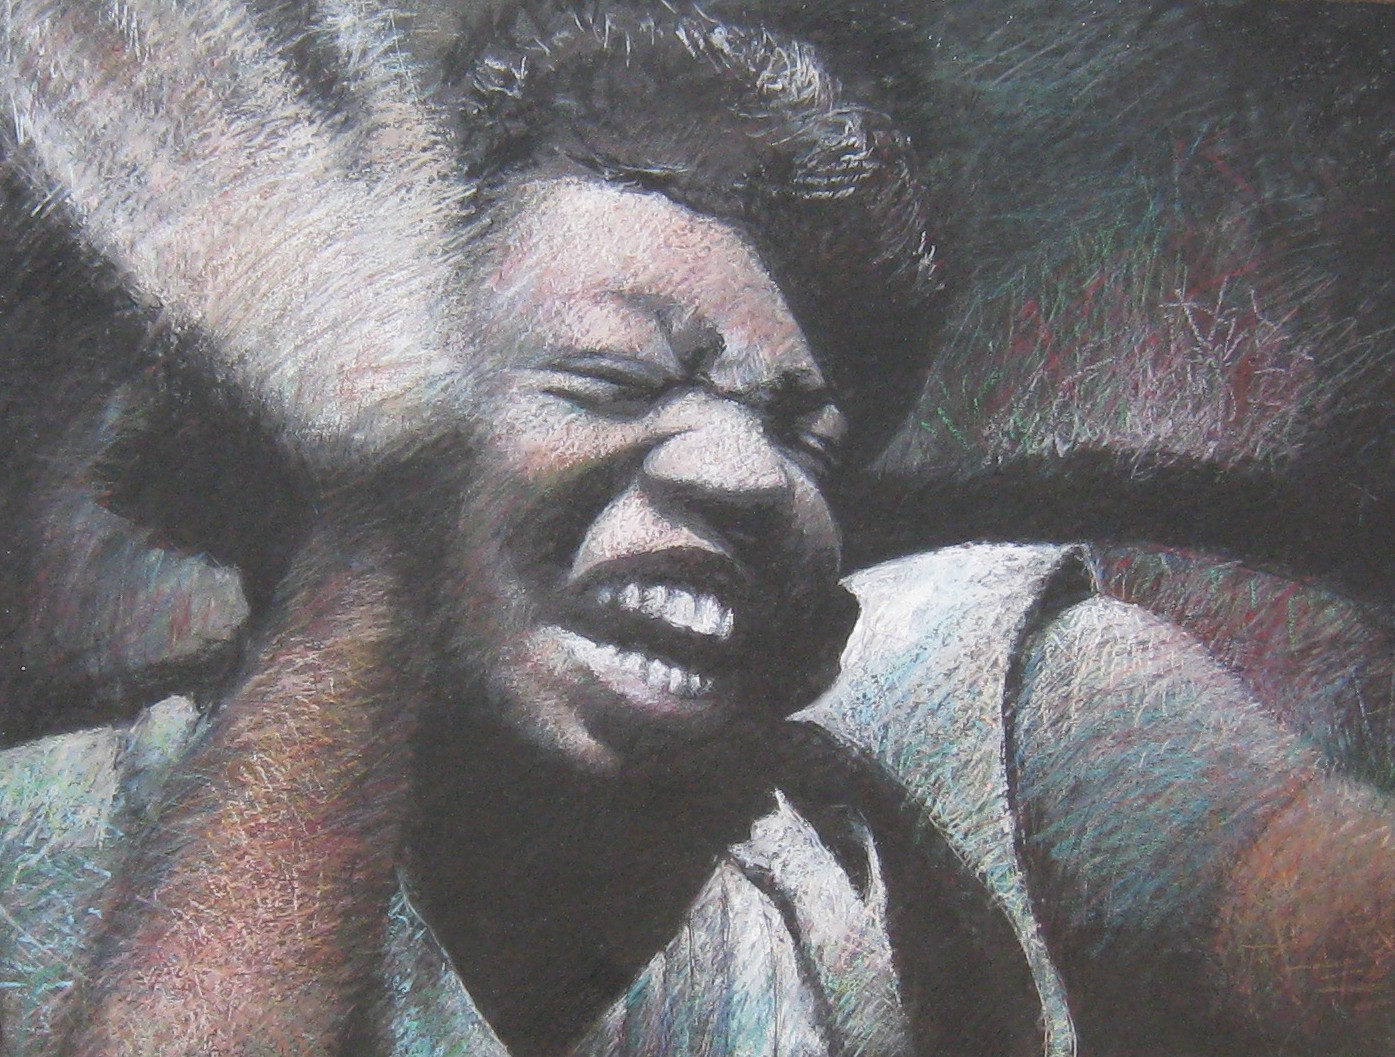 An oil pastel portrait with muted colors depicting a middle-aged African American woman wearing a light blue blouse against a dark black background, created by the author. The expression on the woman's face is rapturous with resilience, eyes tightly closed, mouth open and her bright white teeth displayed in a shout, as her right hand waves upraised in a blur of movement.